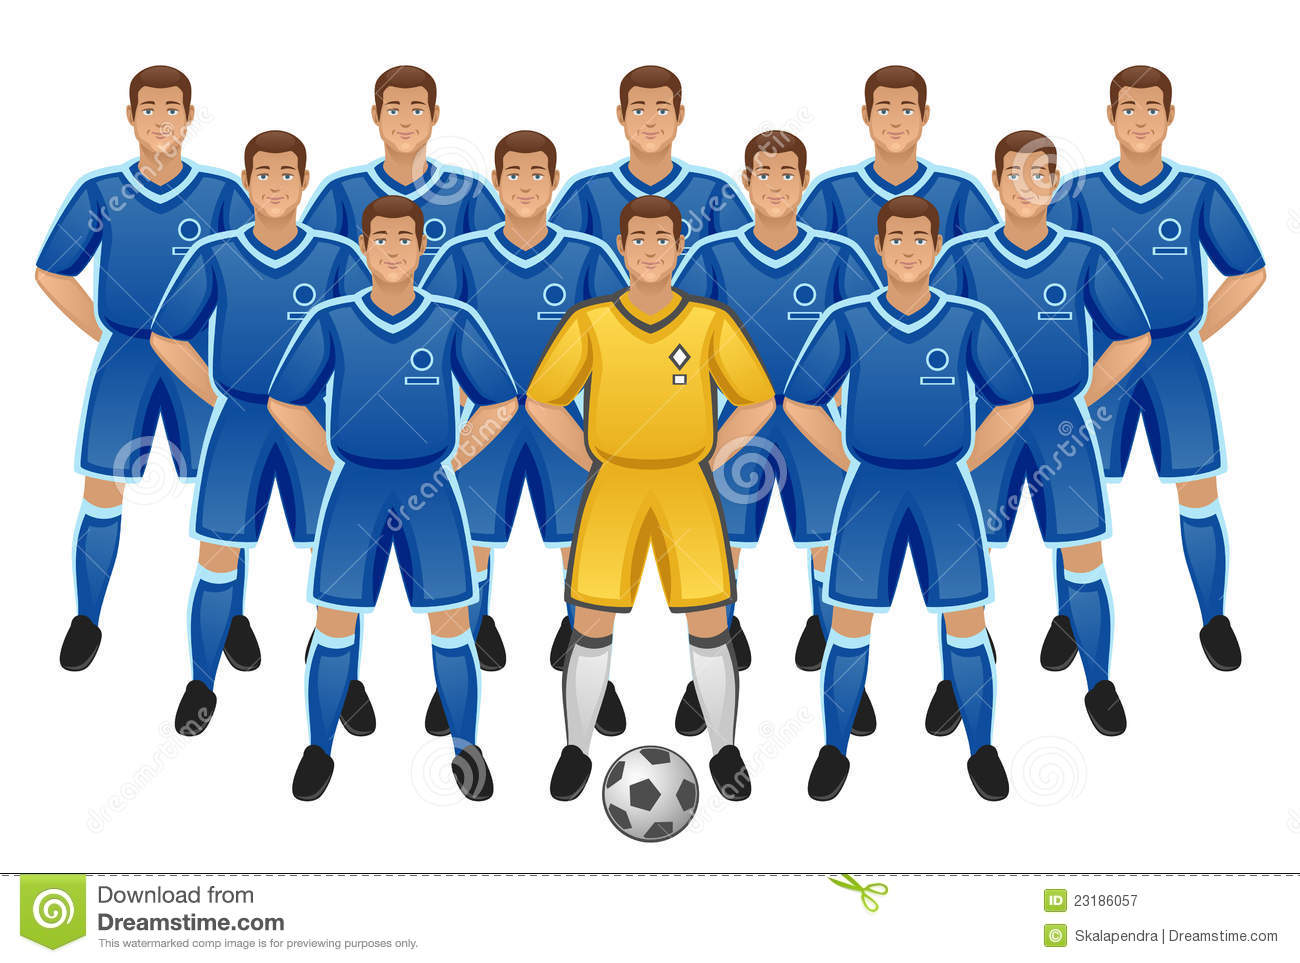 Clipart soccer team banner download Soccer Team Royalty Free Stock Photography Image: 23186057 - Free ... banner download